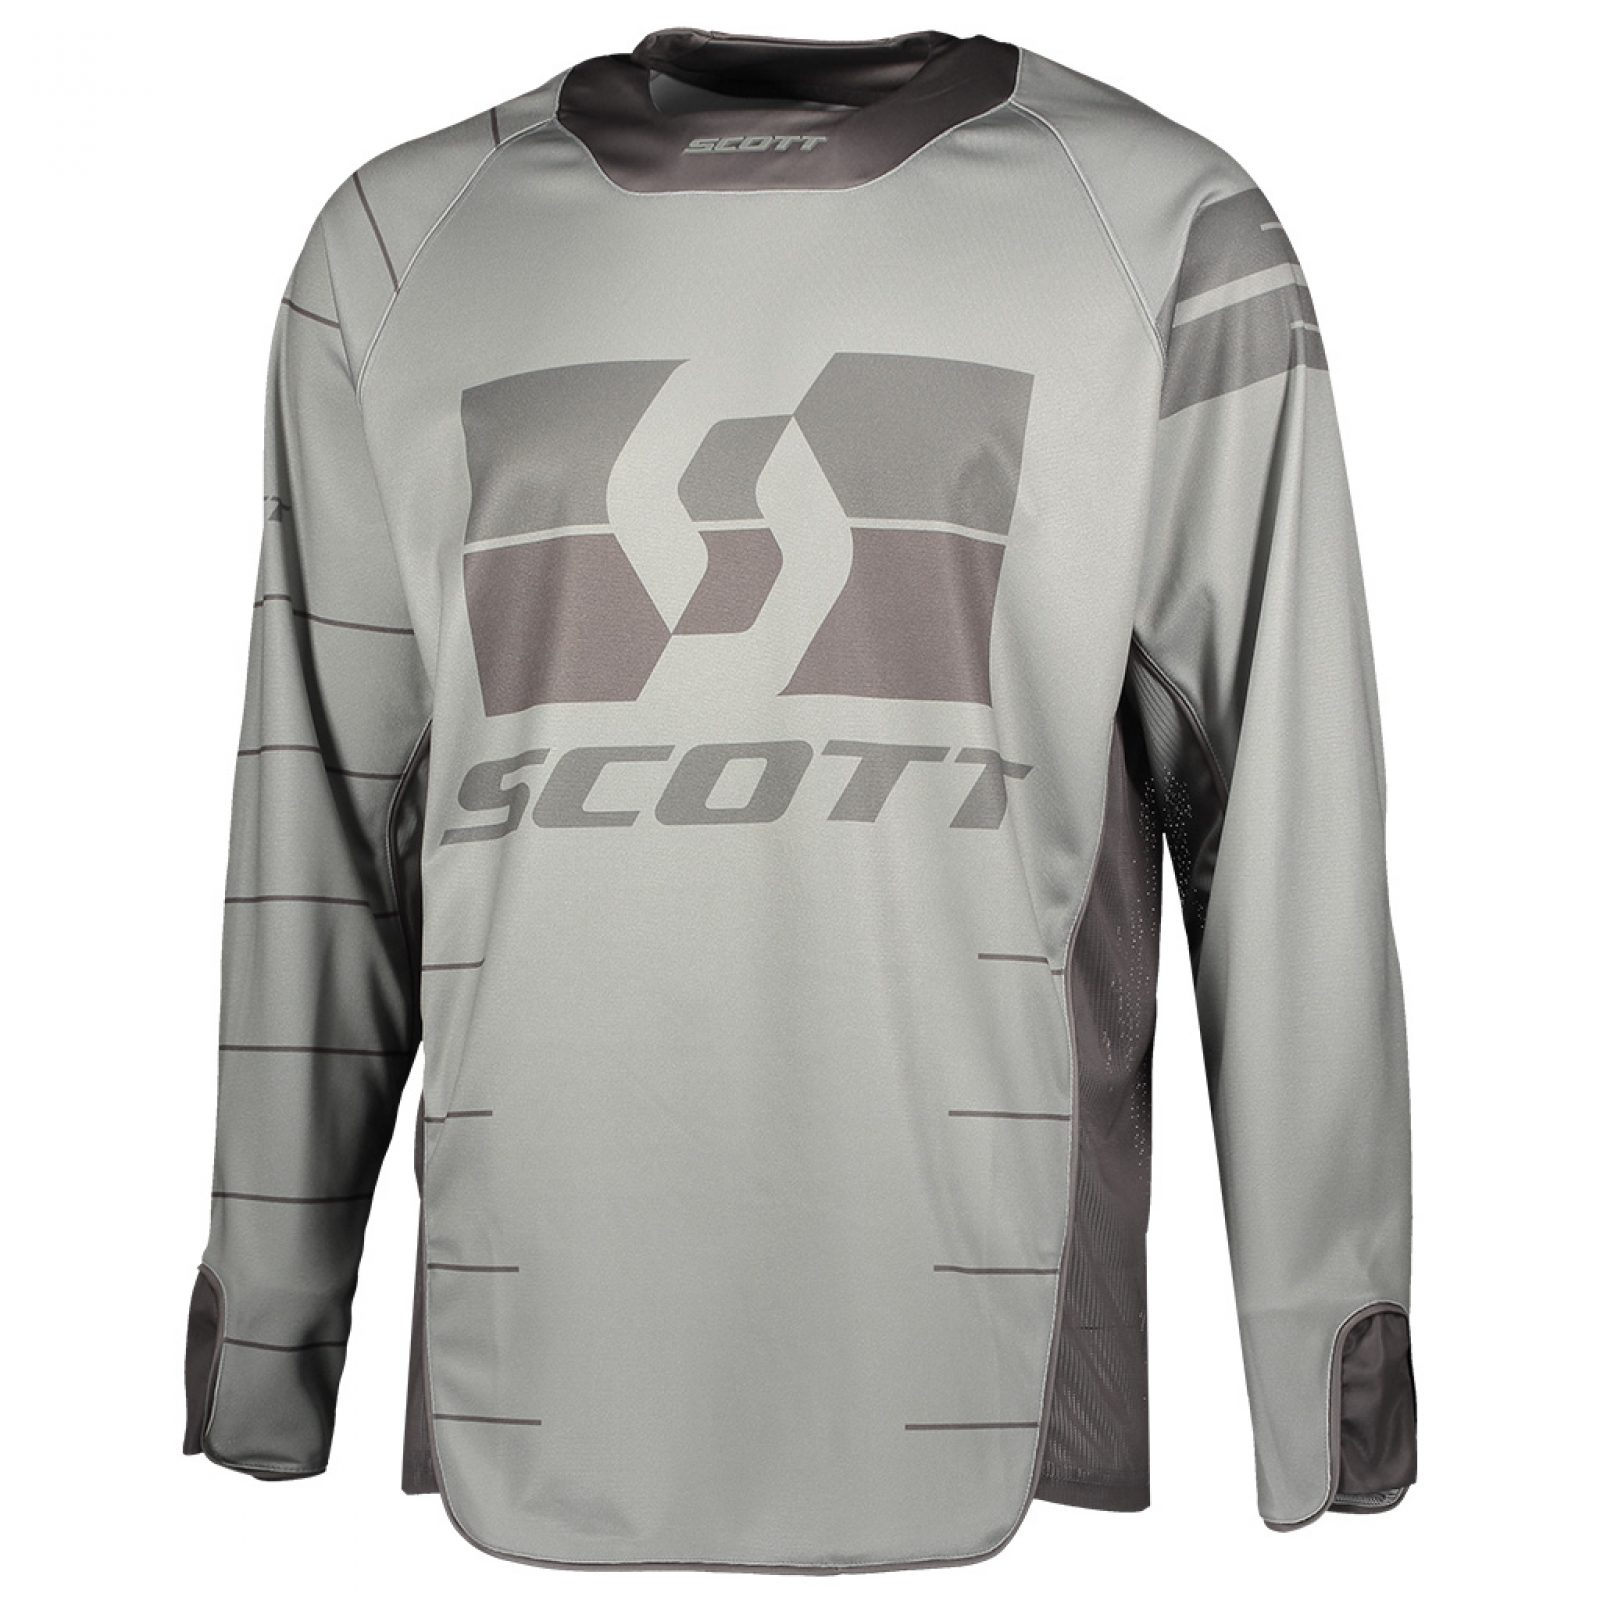 SCOTT_ENDURO_JERSEY_GREY